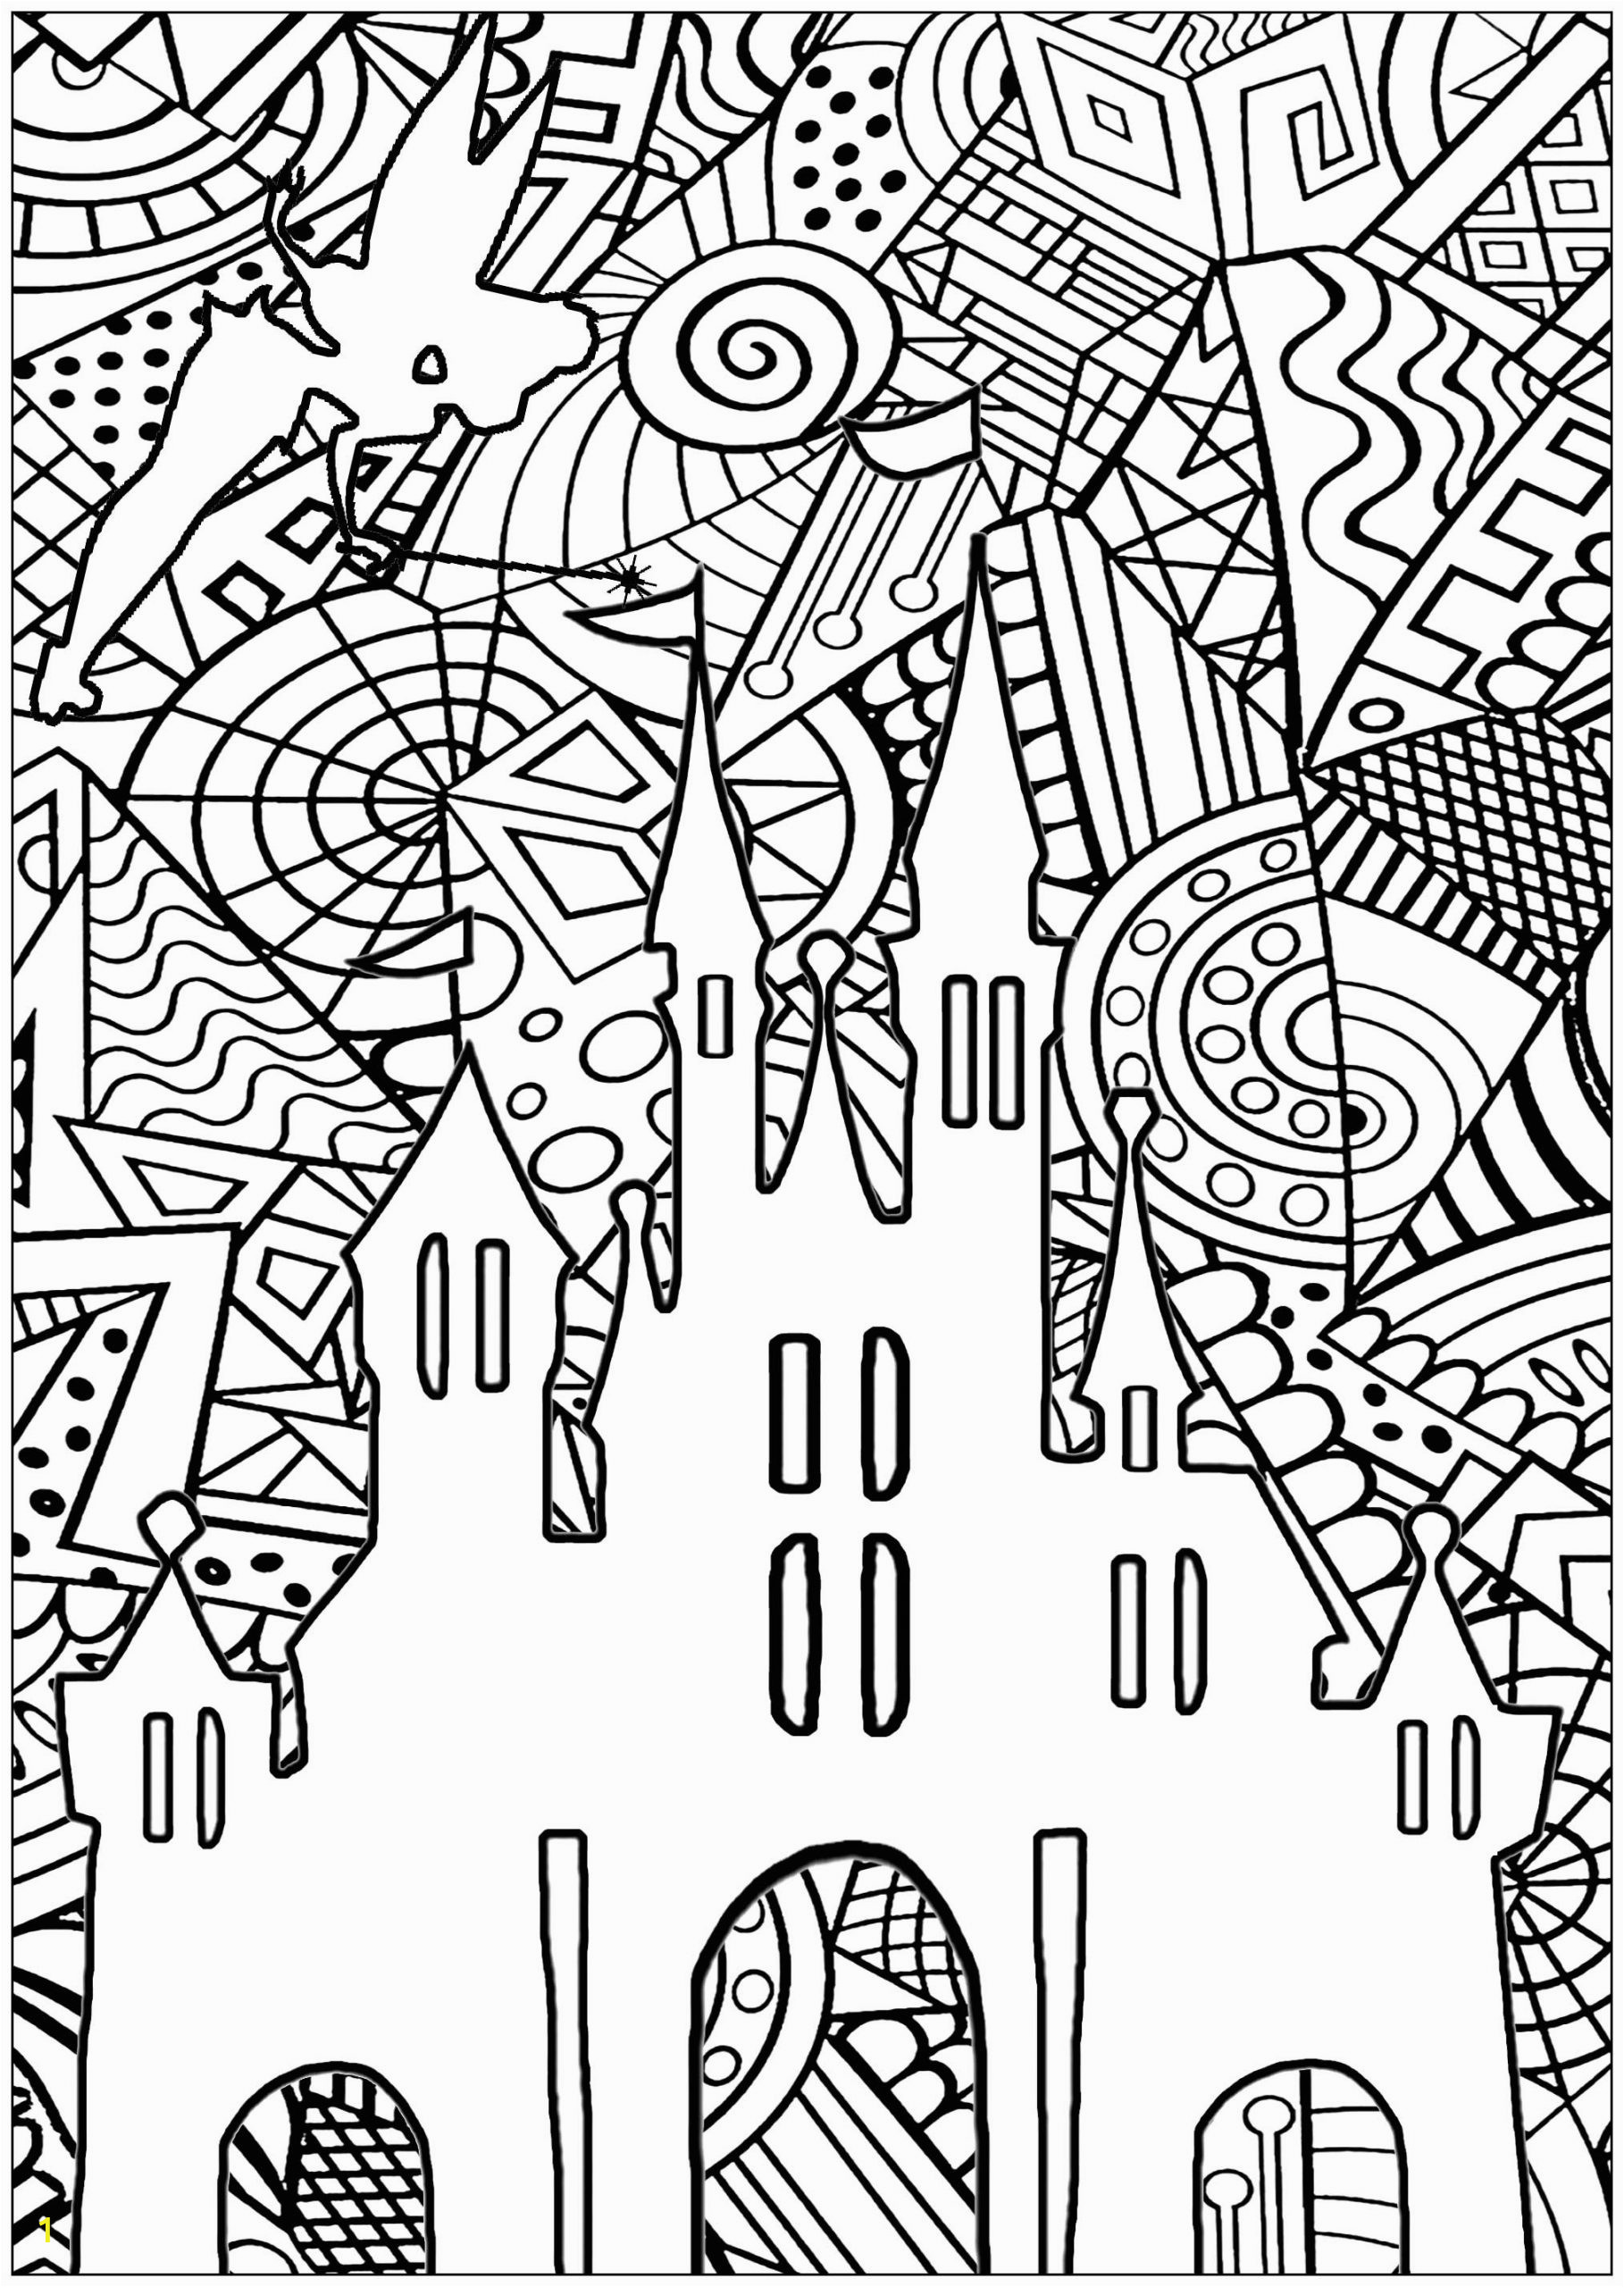 disney adult colouring pages pug coloring cool for kids aladdin lego jurassic world colour bar book children playing acotar christmas color by number pilgrim diy football helmet my scaled